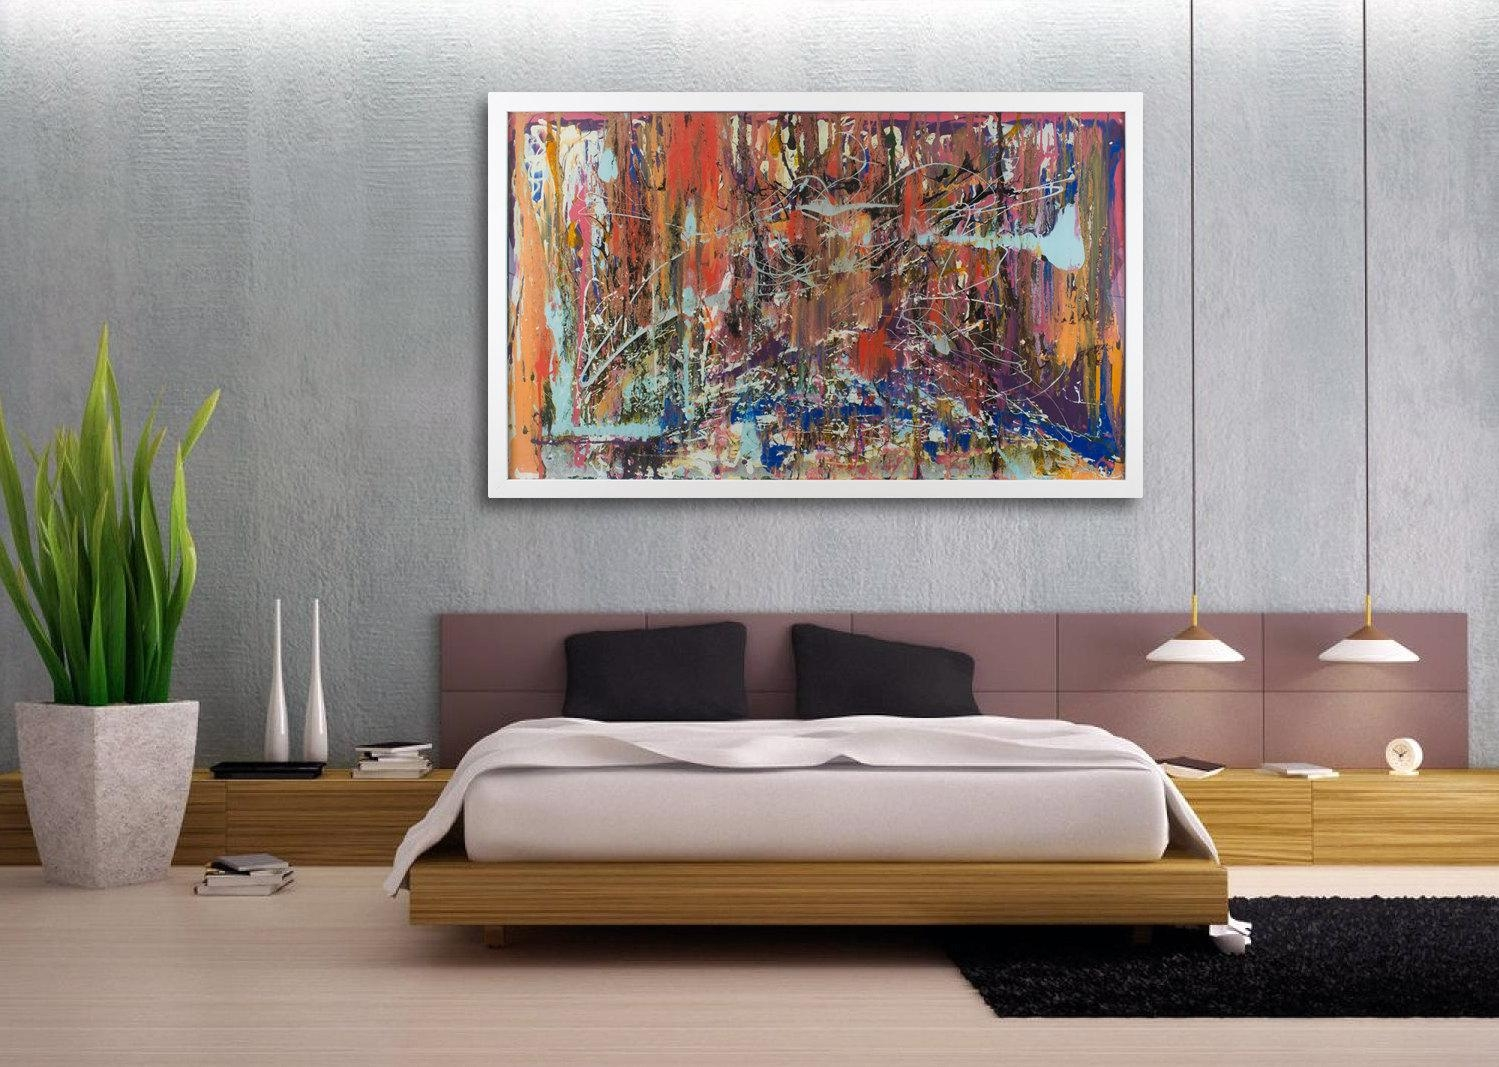 Extra Large Contemporary Wall Art : Best Way To Use Contemporary Throughout Art For Large Wall (Image 10 of 20)